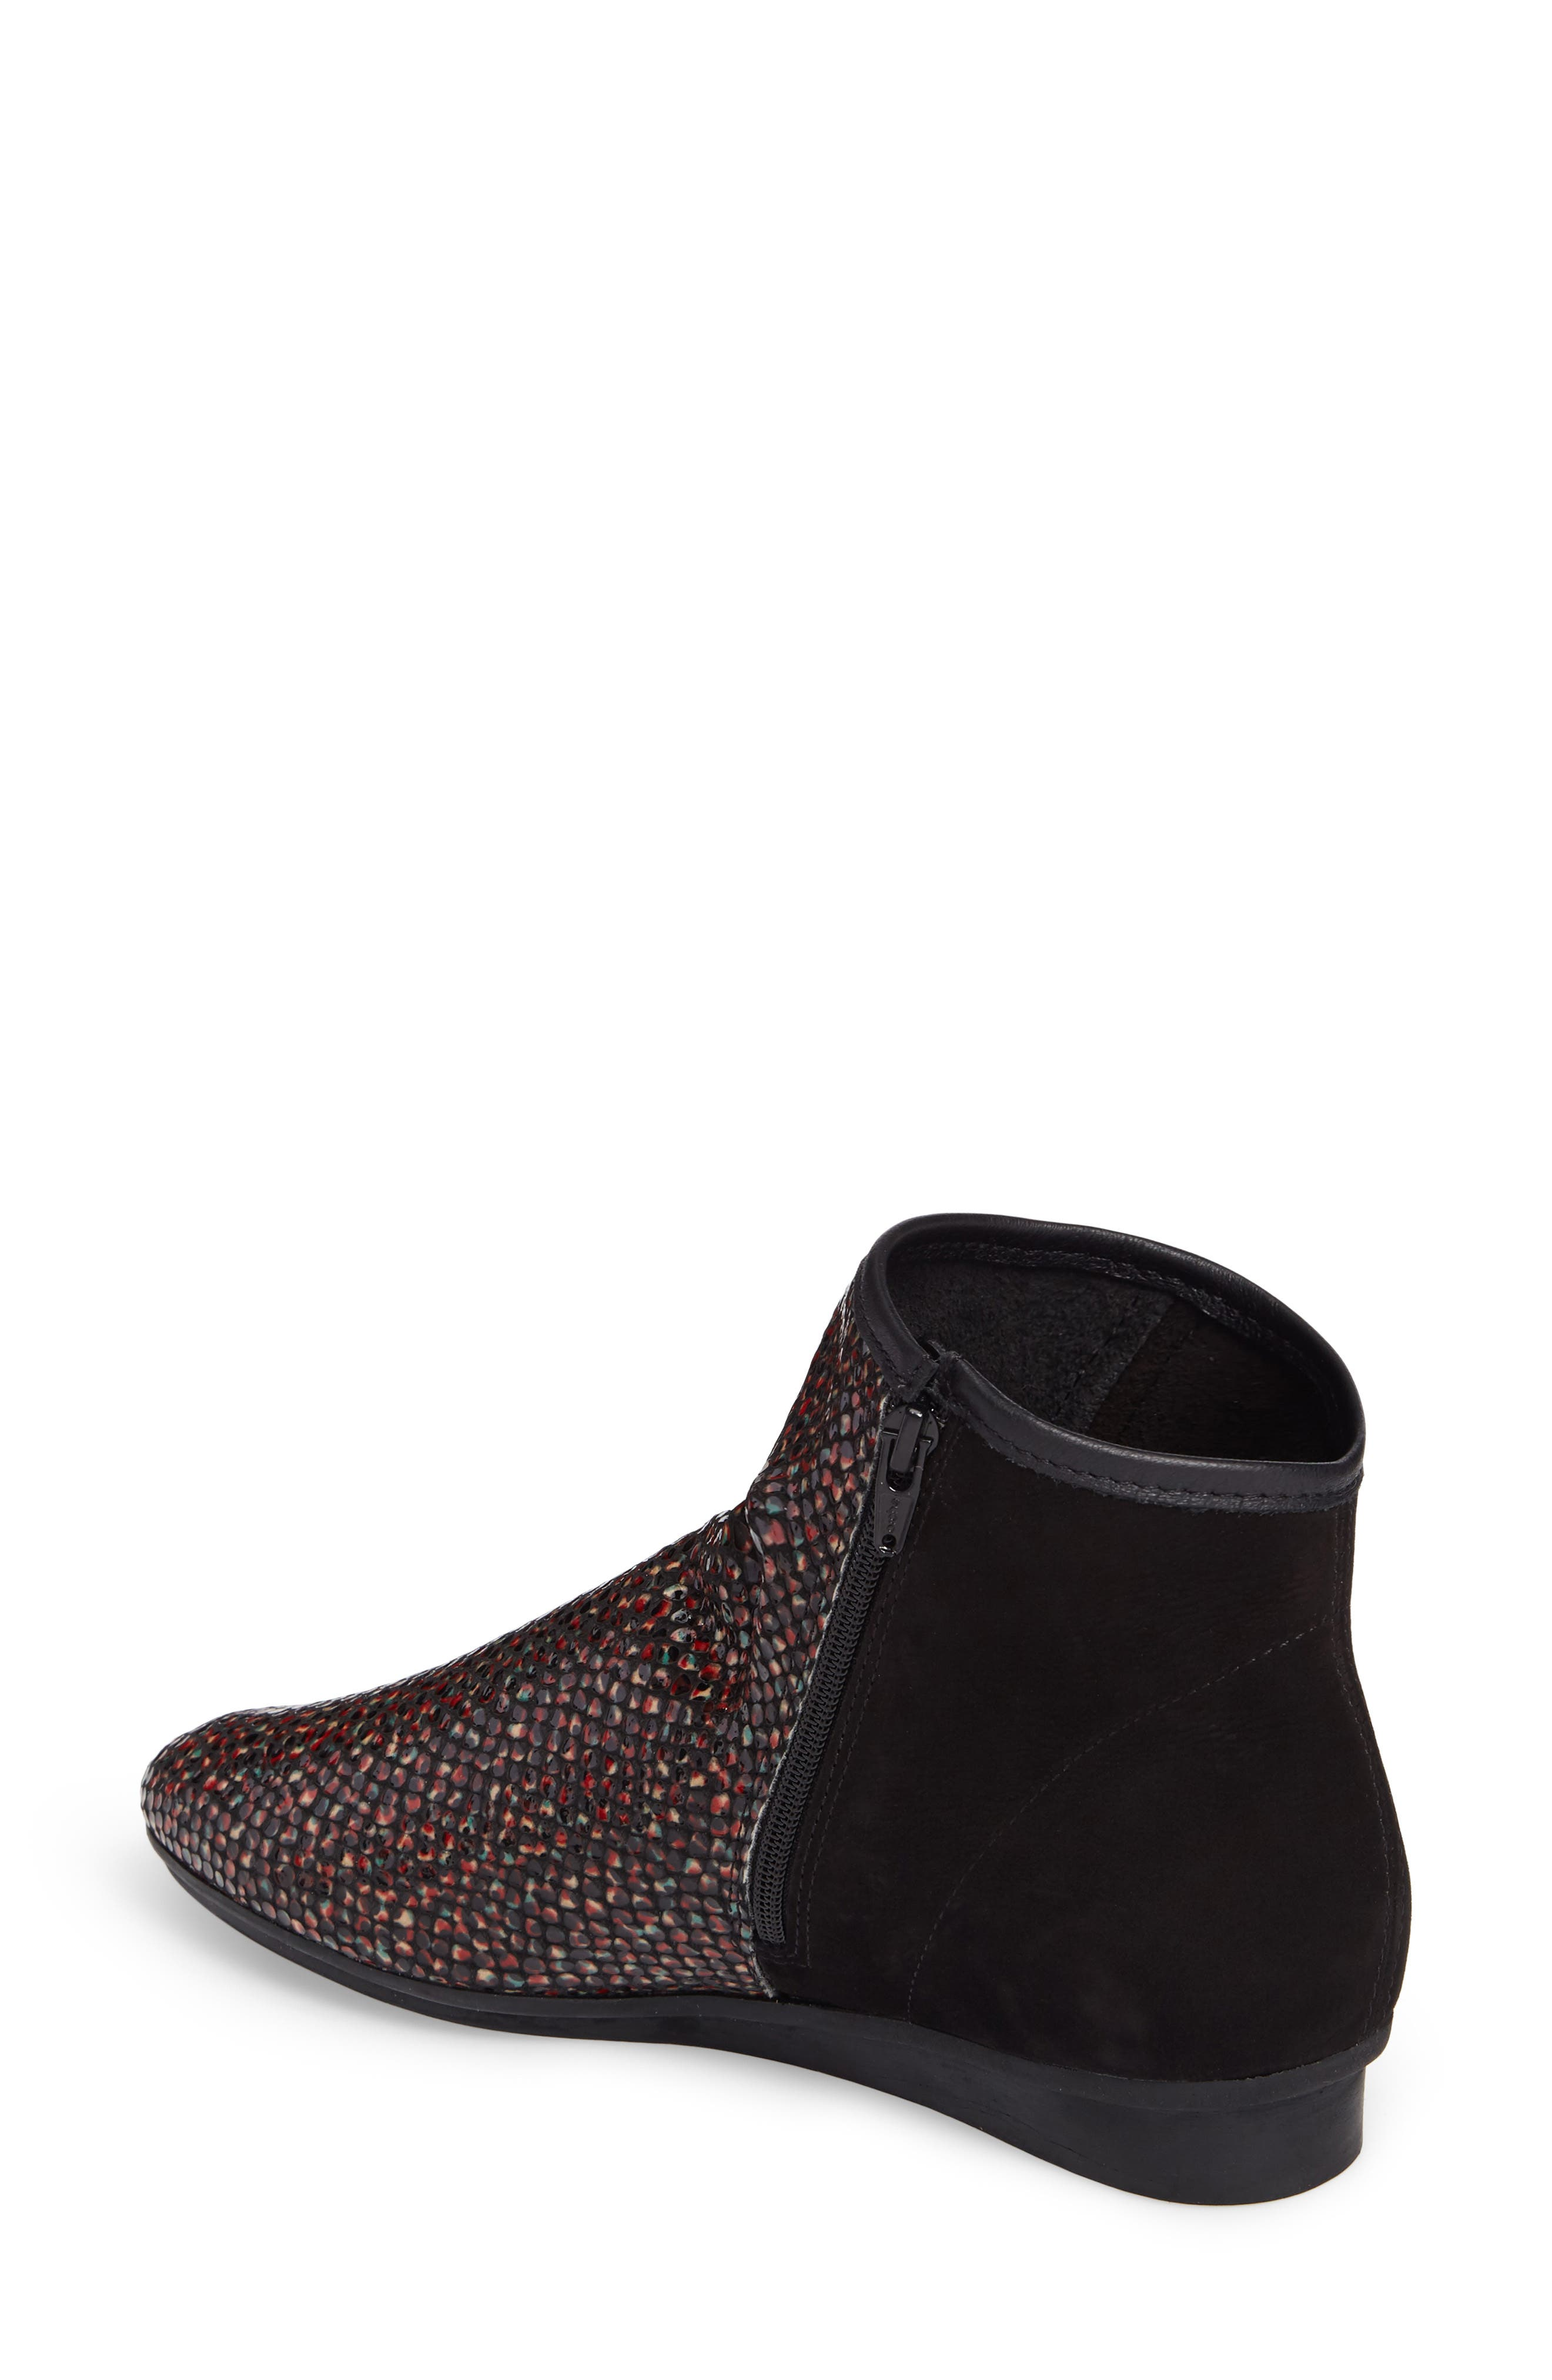 Ninote Bootie,                             Alternate thumbnail 6, color,